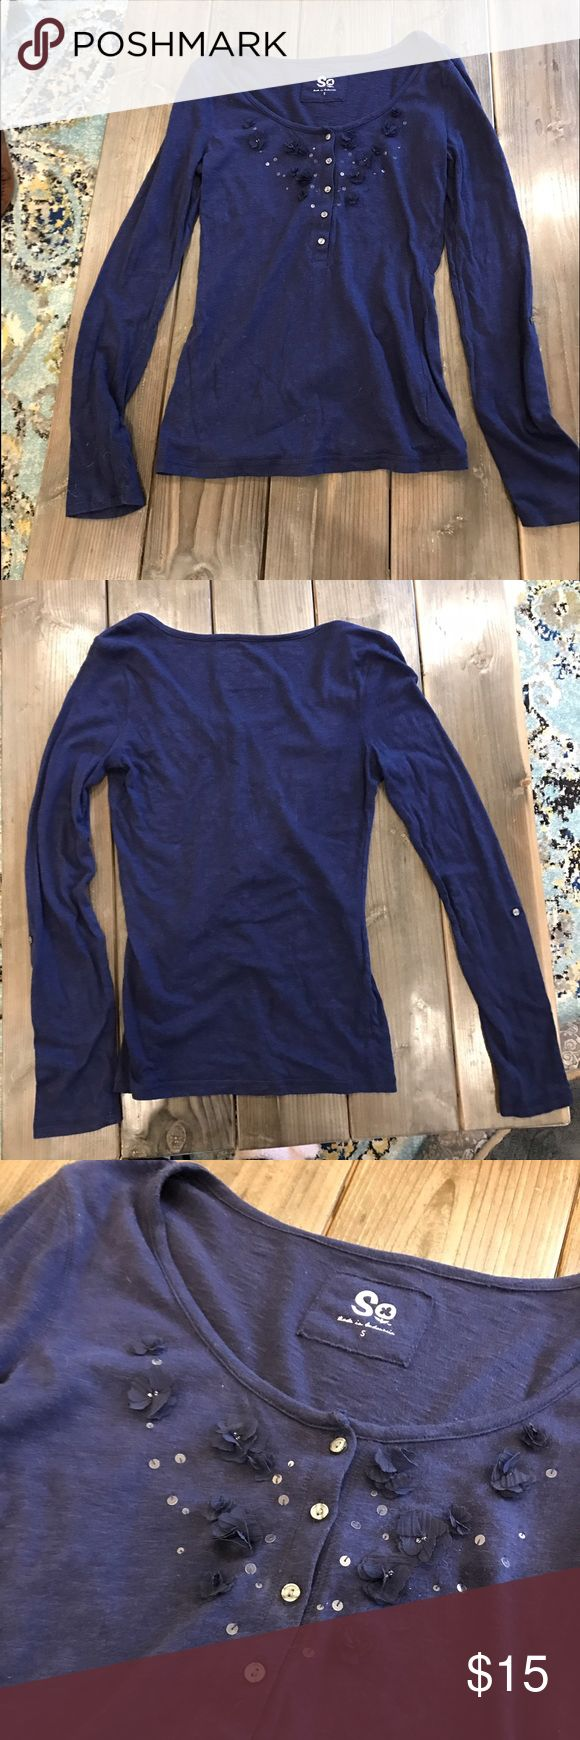 Navy long sleeve top with flower detail Navy long sleeve shirt with buttons and pretty flower detail. Size Small. So Tops Tees - Long Sleeve